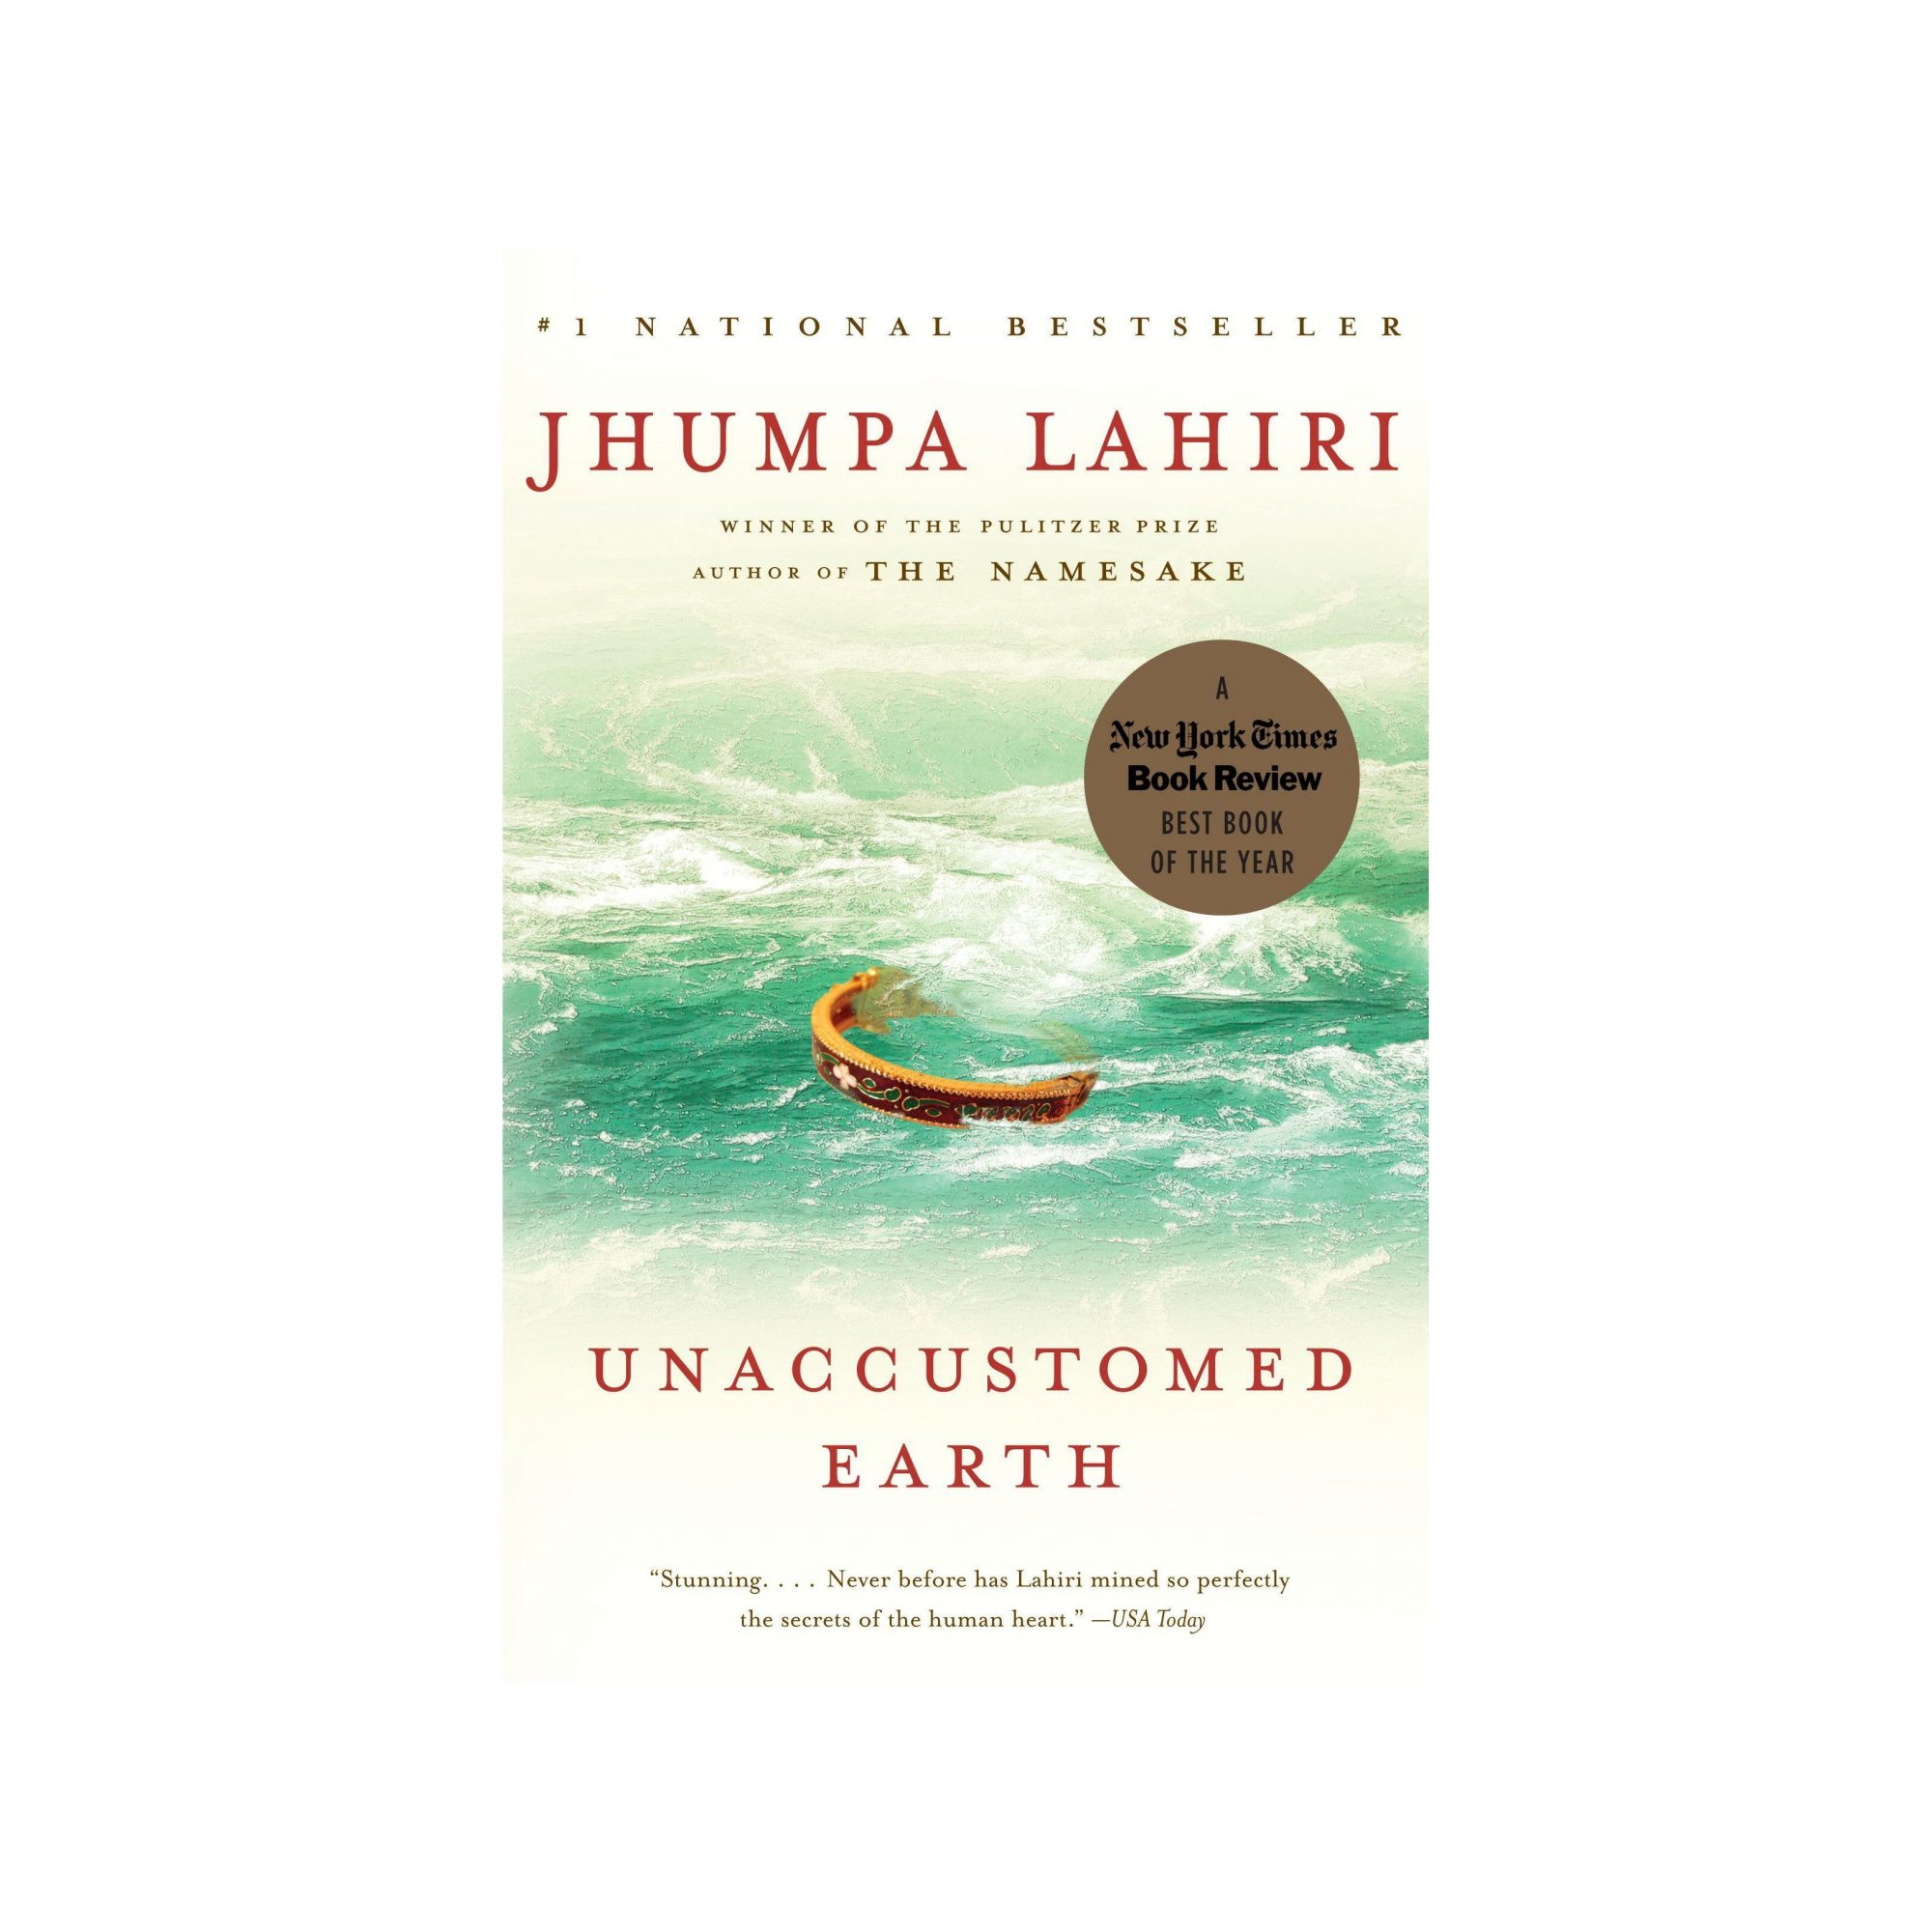 Unaccustomed Earth, by Jhumpa Lahiri